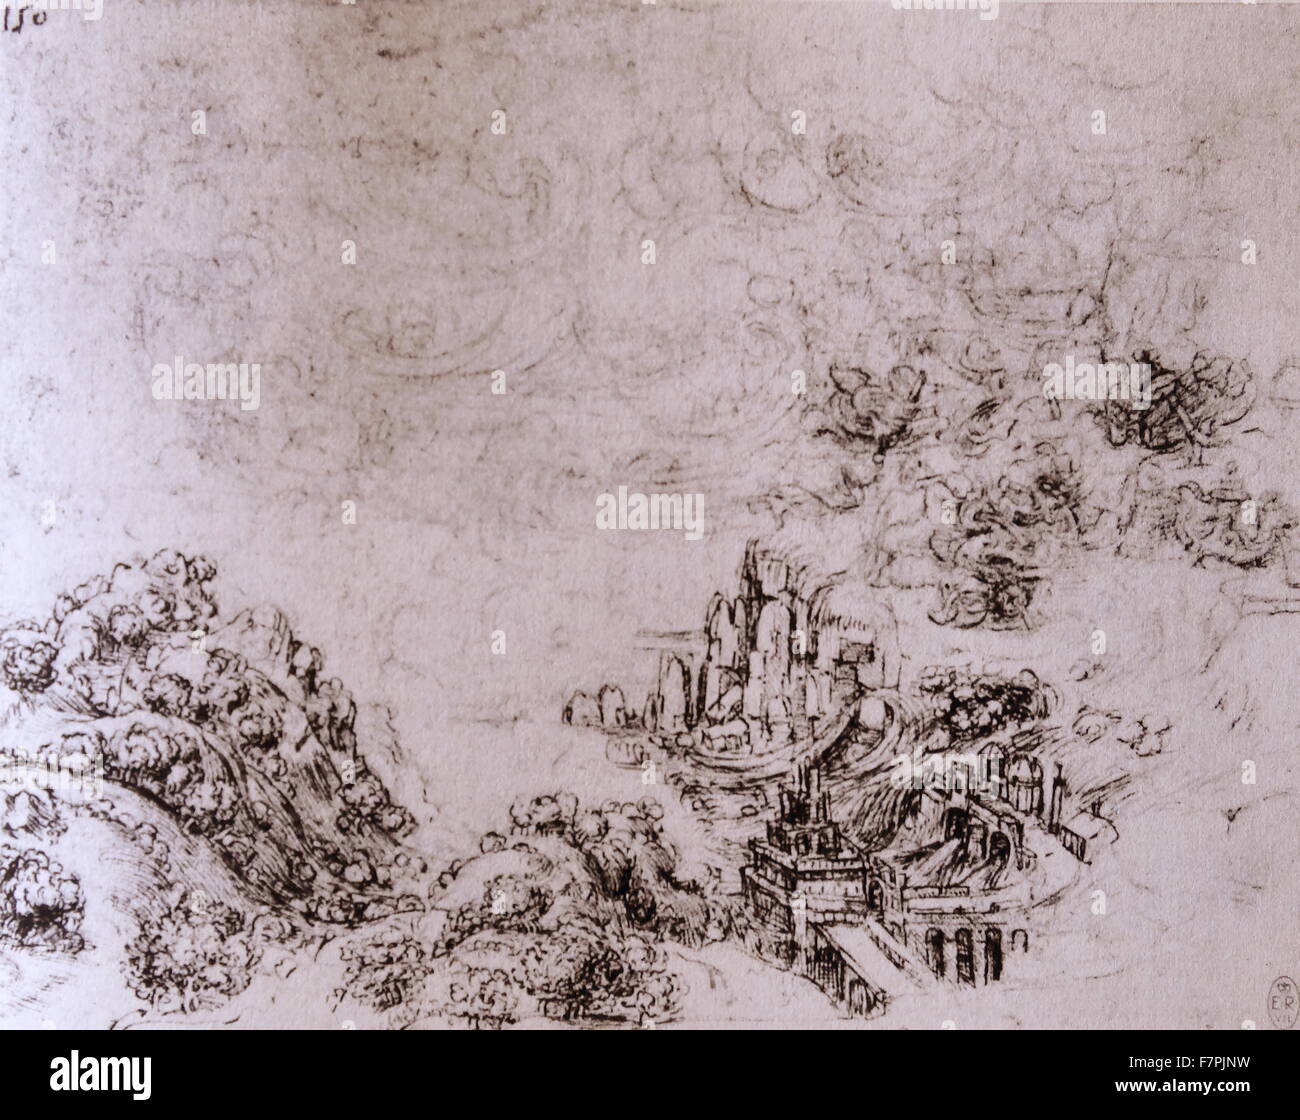 Coastal Landscape in a Storm by Leonardo Da Vinci (1452-1519) Italian polymath whose areas of interest included - Stock Image